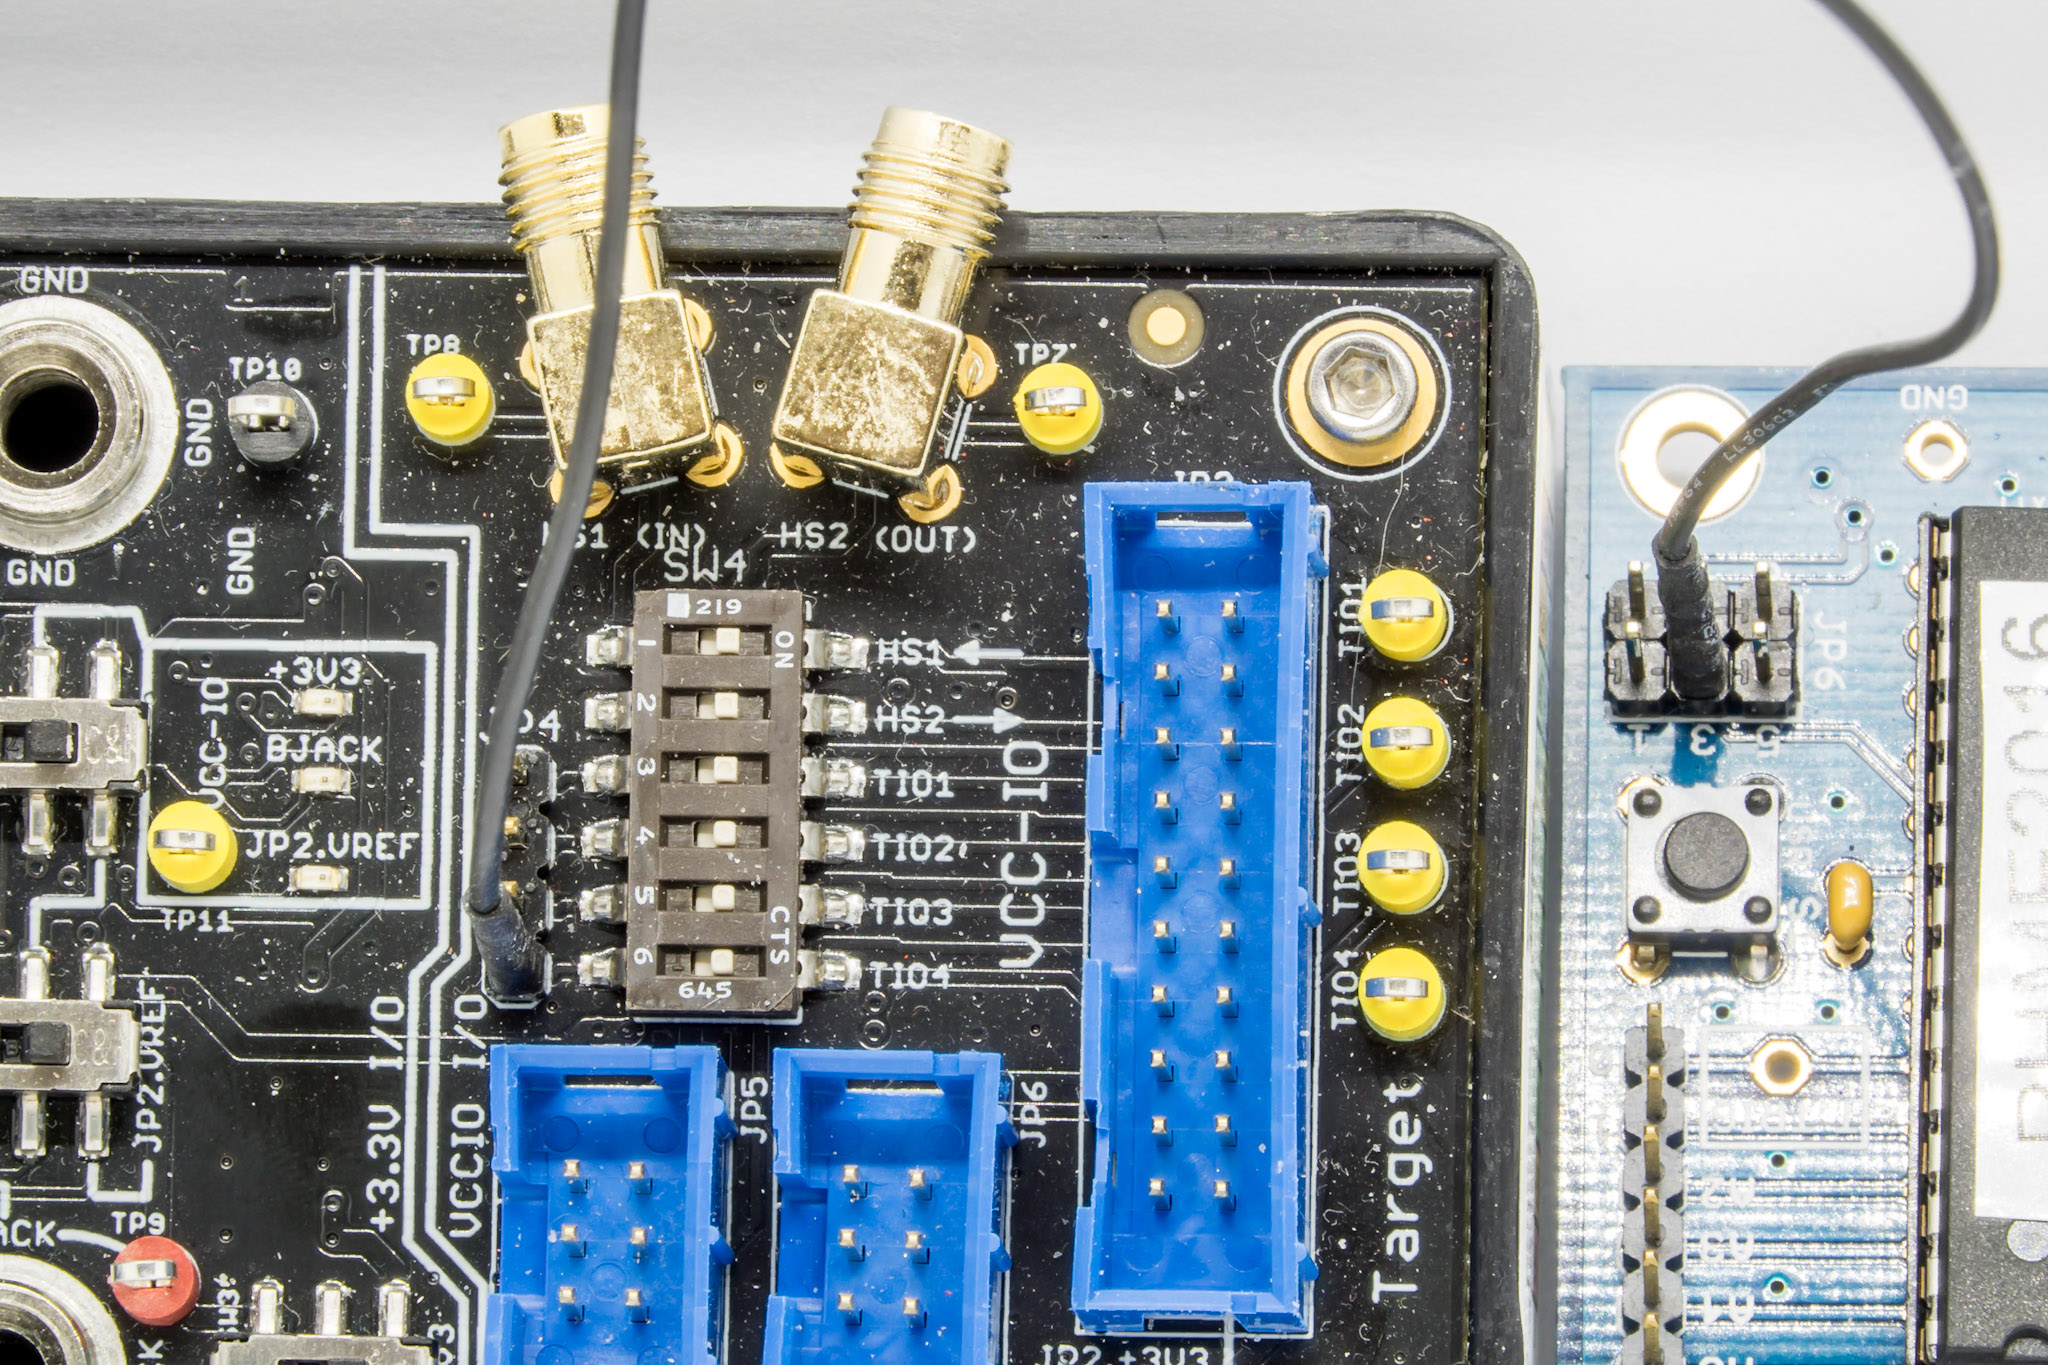 Trigger wire going from NOTDUINO (right) to the Advanced Breakout board (left)